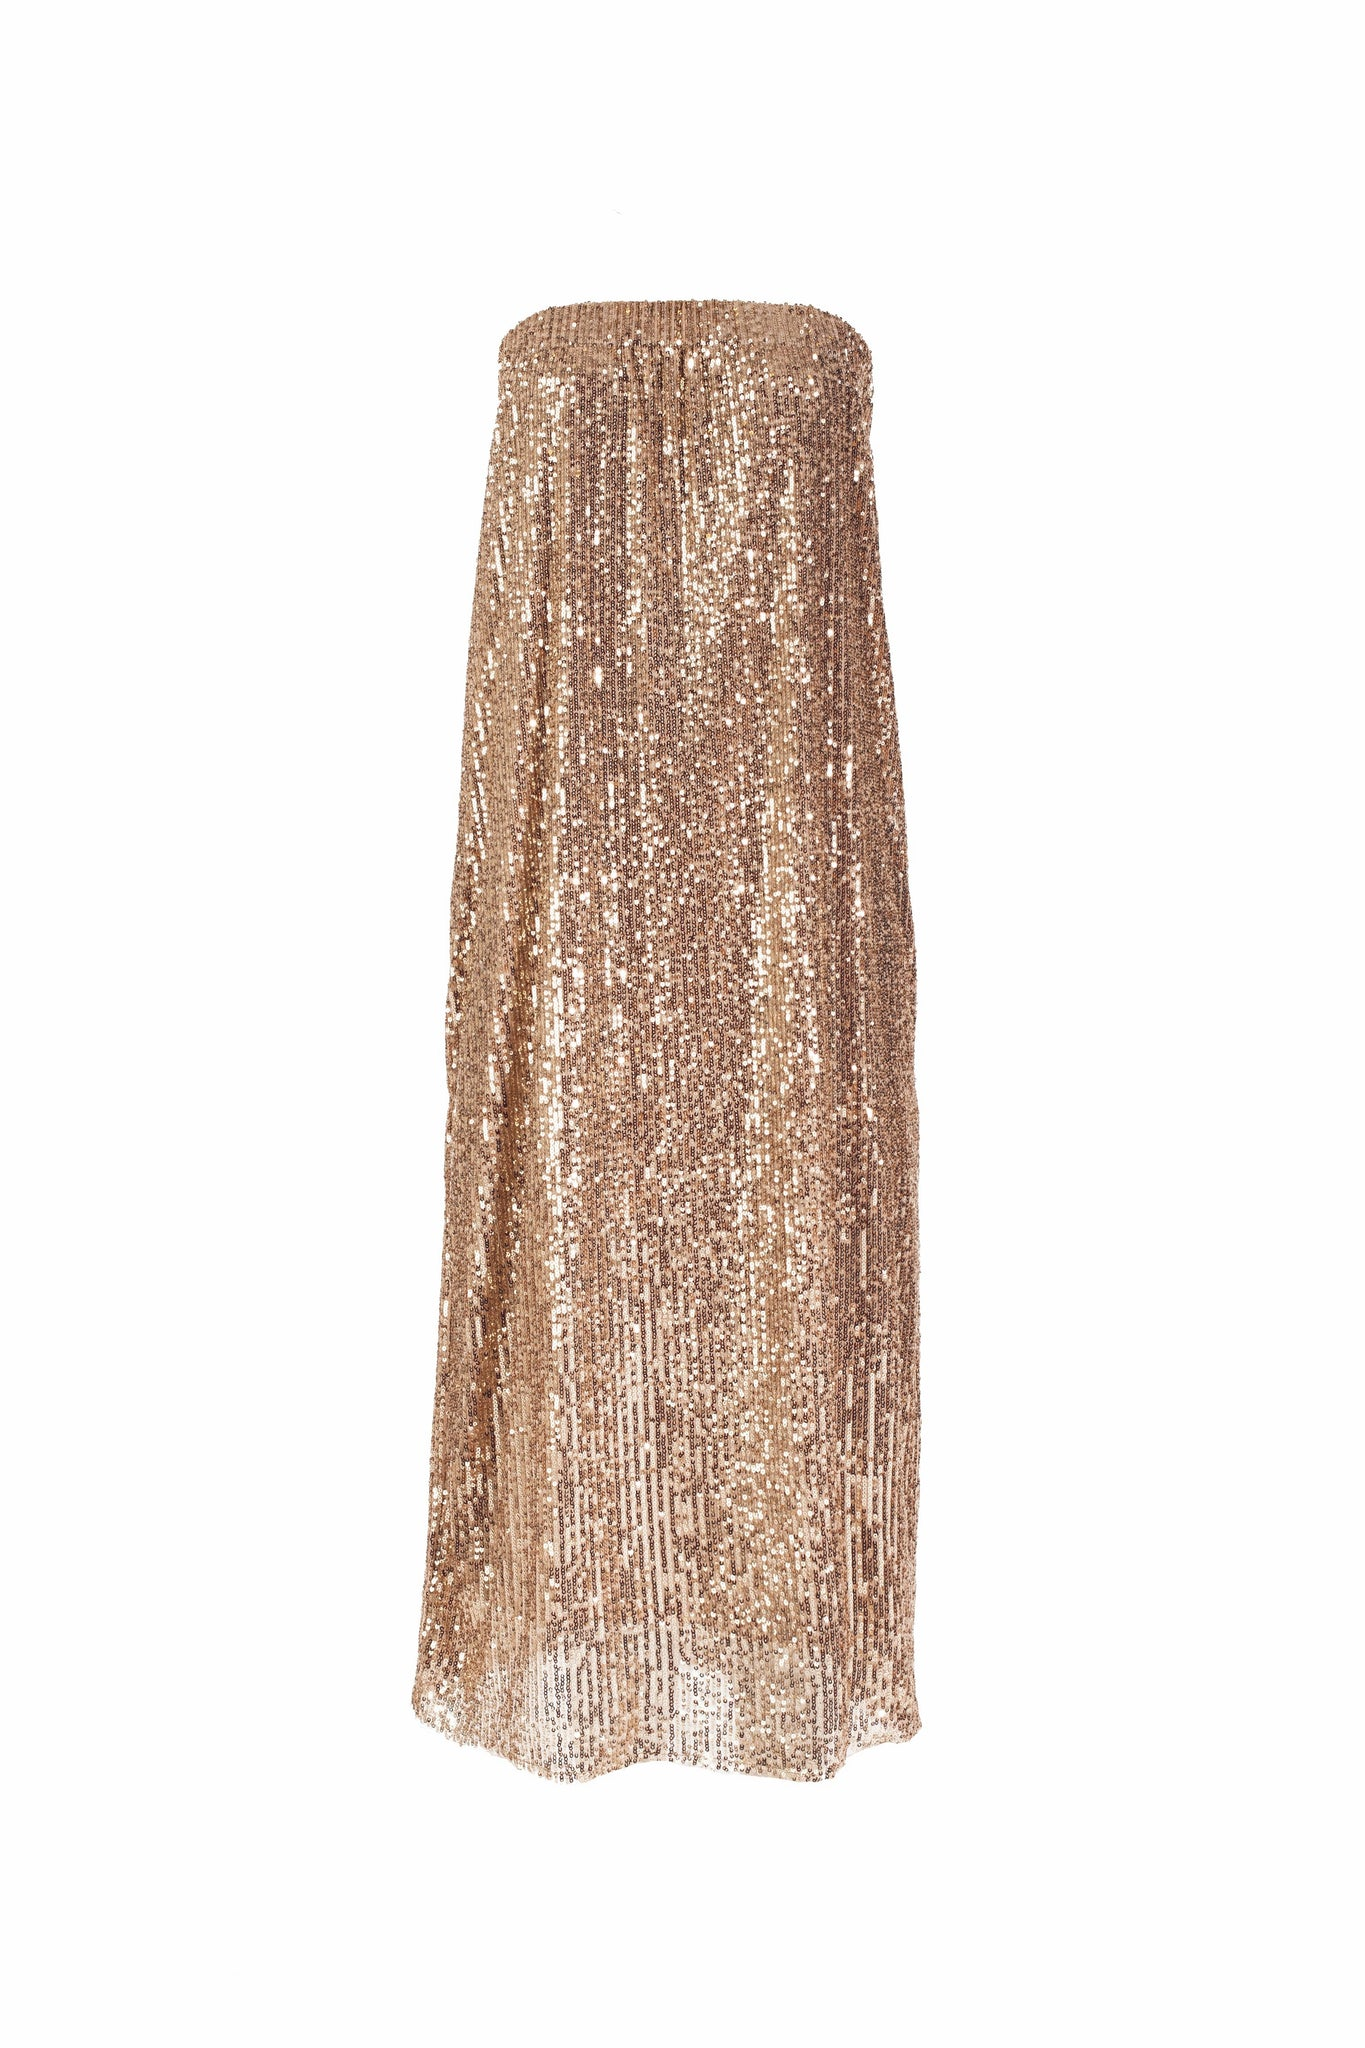 9771 - LIRA - SEQUINS GOLD DRESS -BYOU by Patricia Gouveia